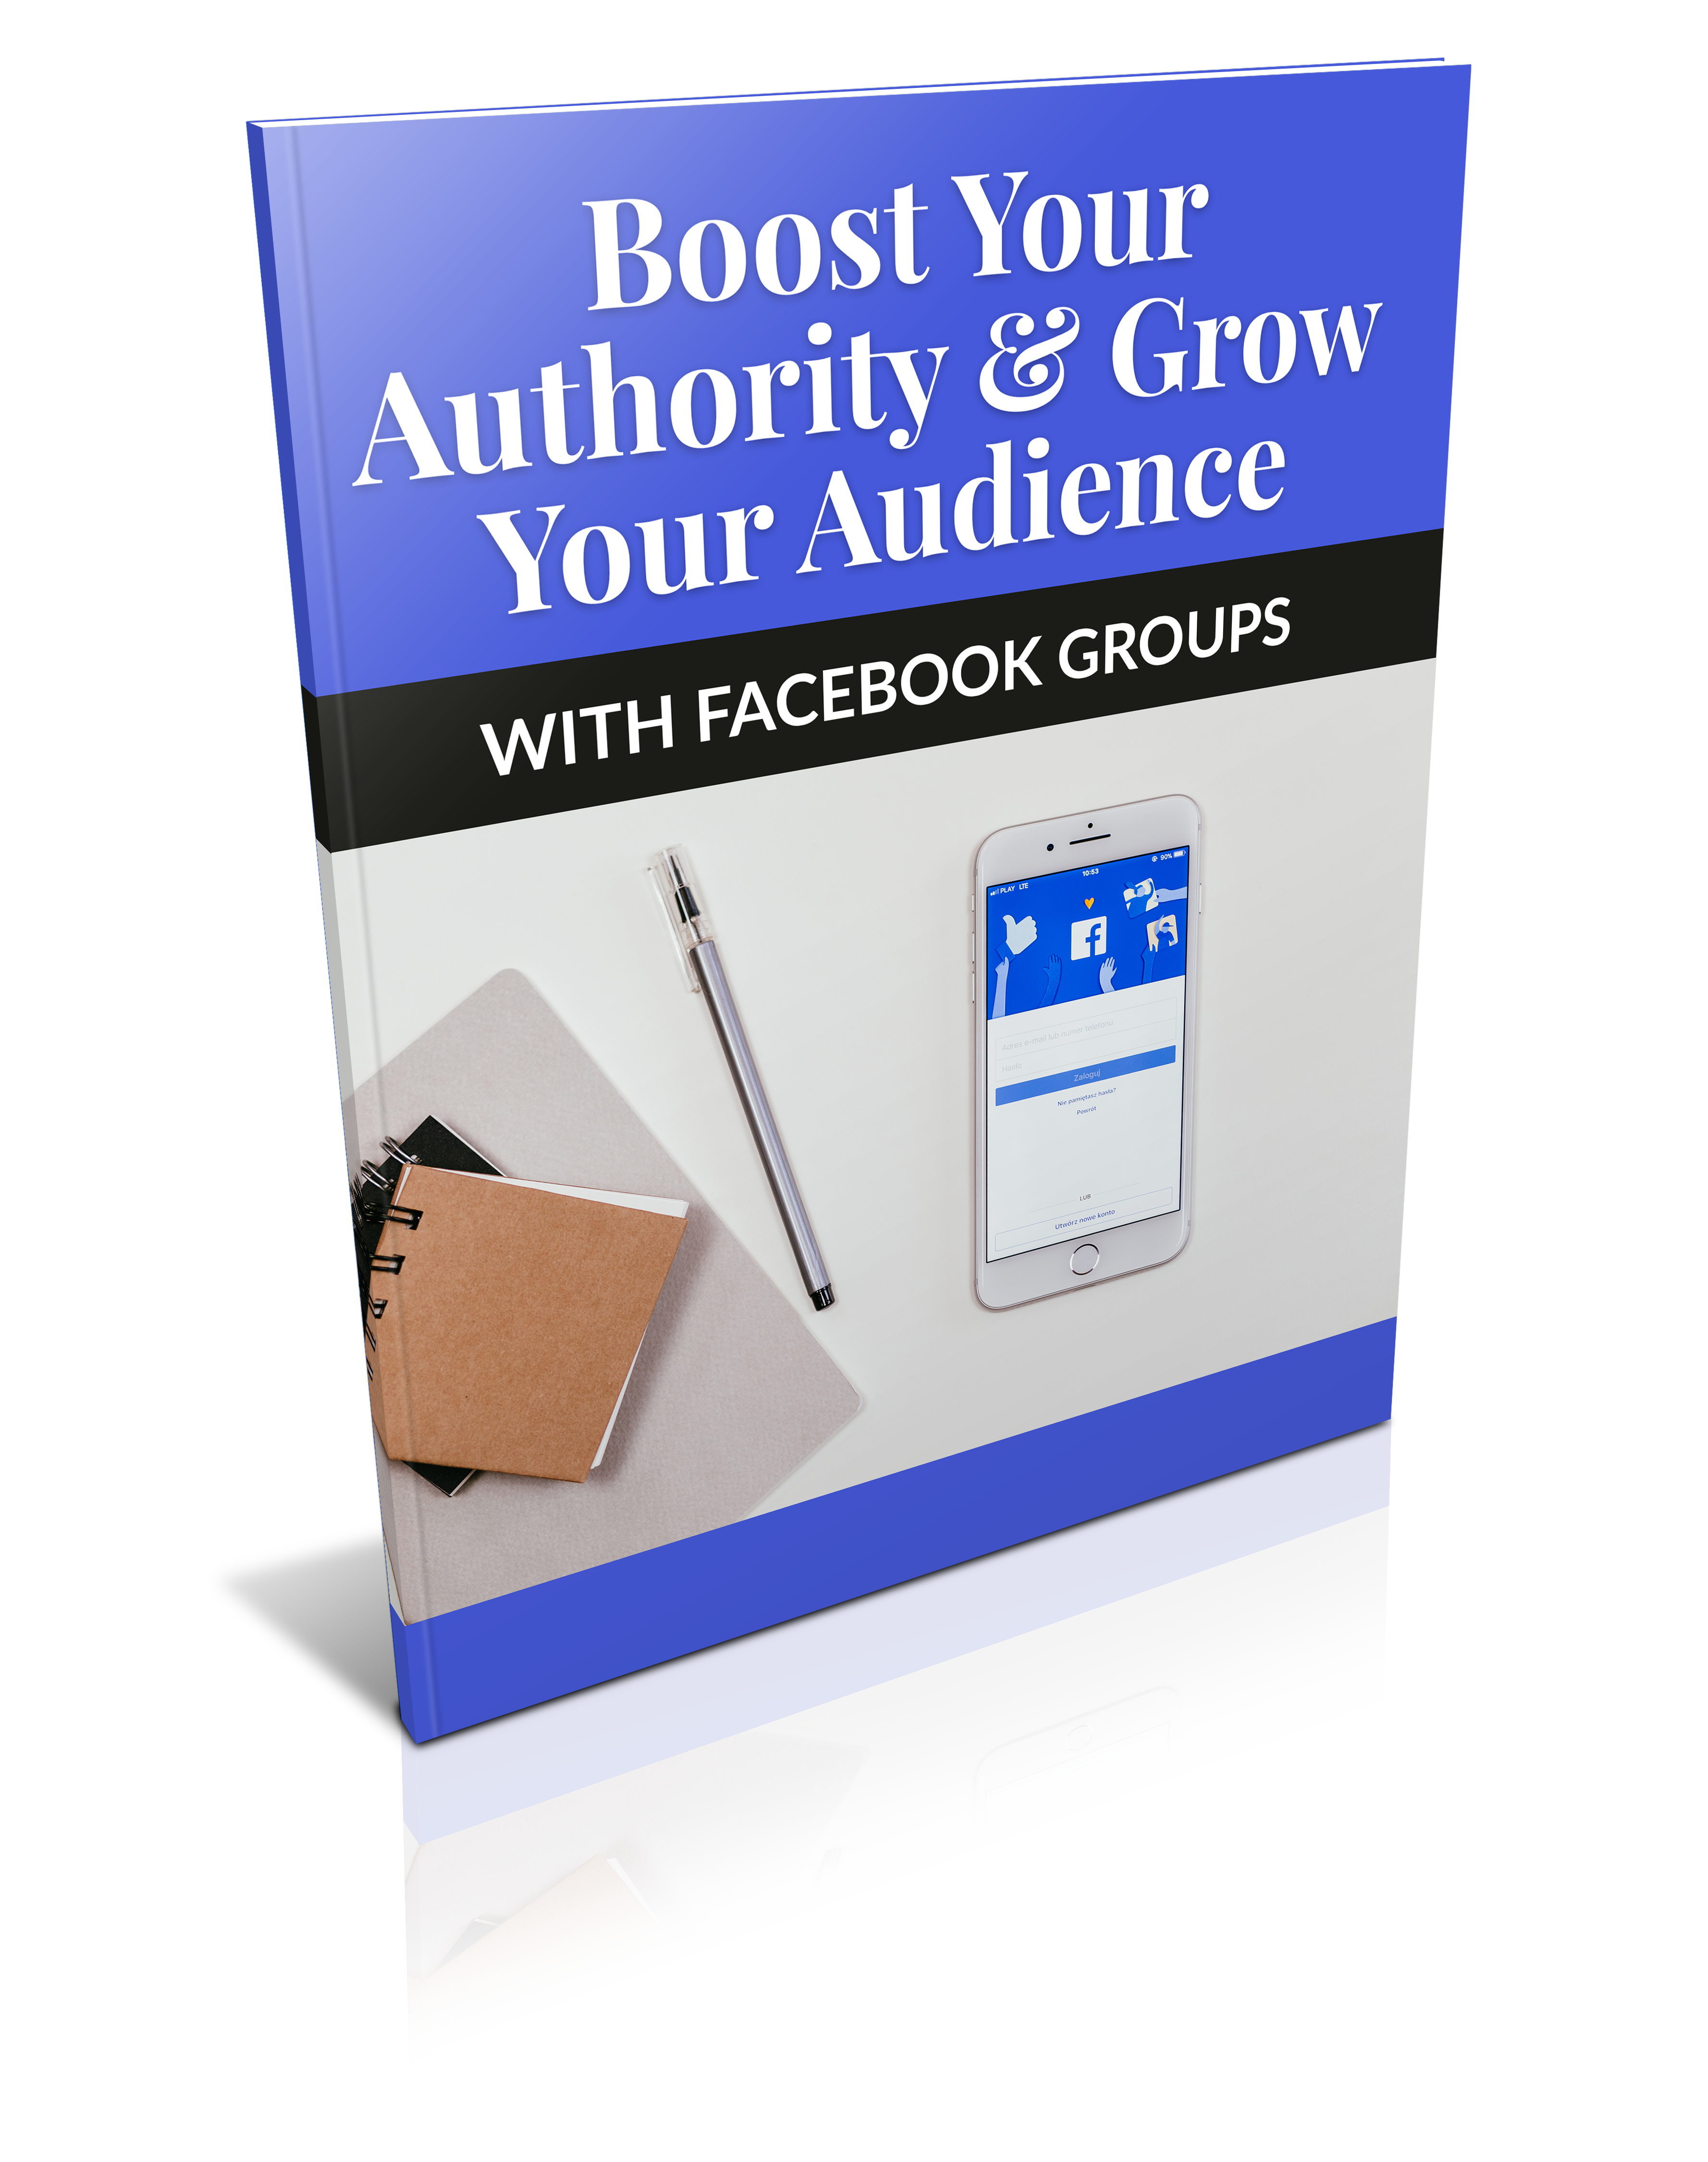 authority with Facebook groups